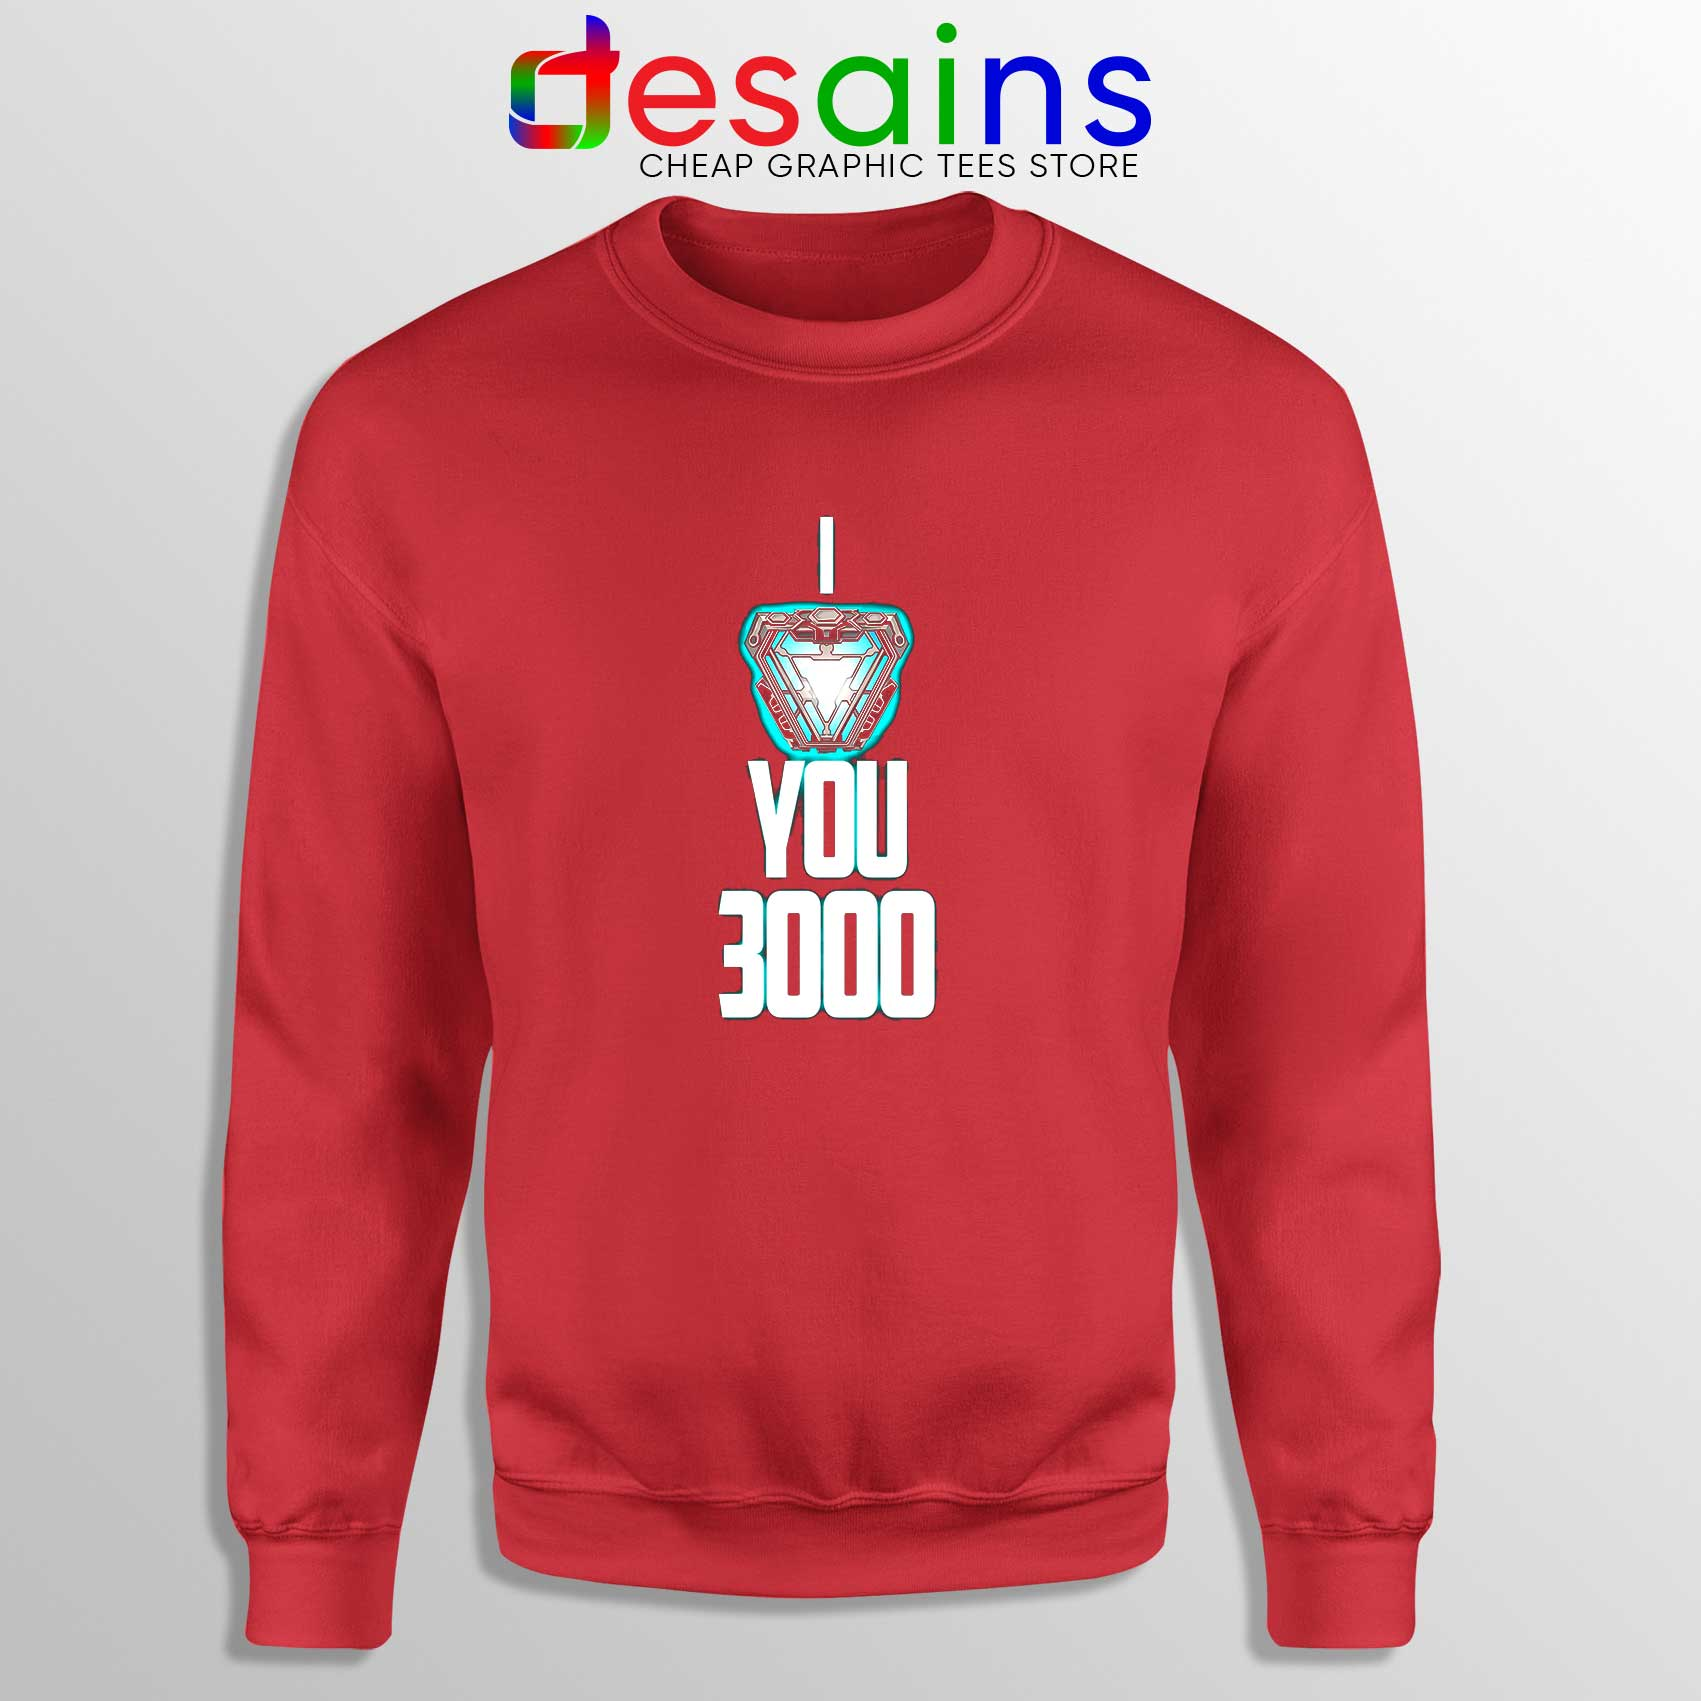 0f1709c1 I Love You 3000 Iron Man Sweatshirt Red Marvel Clothing Online Shop